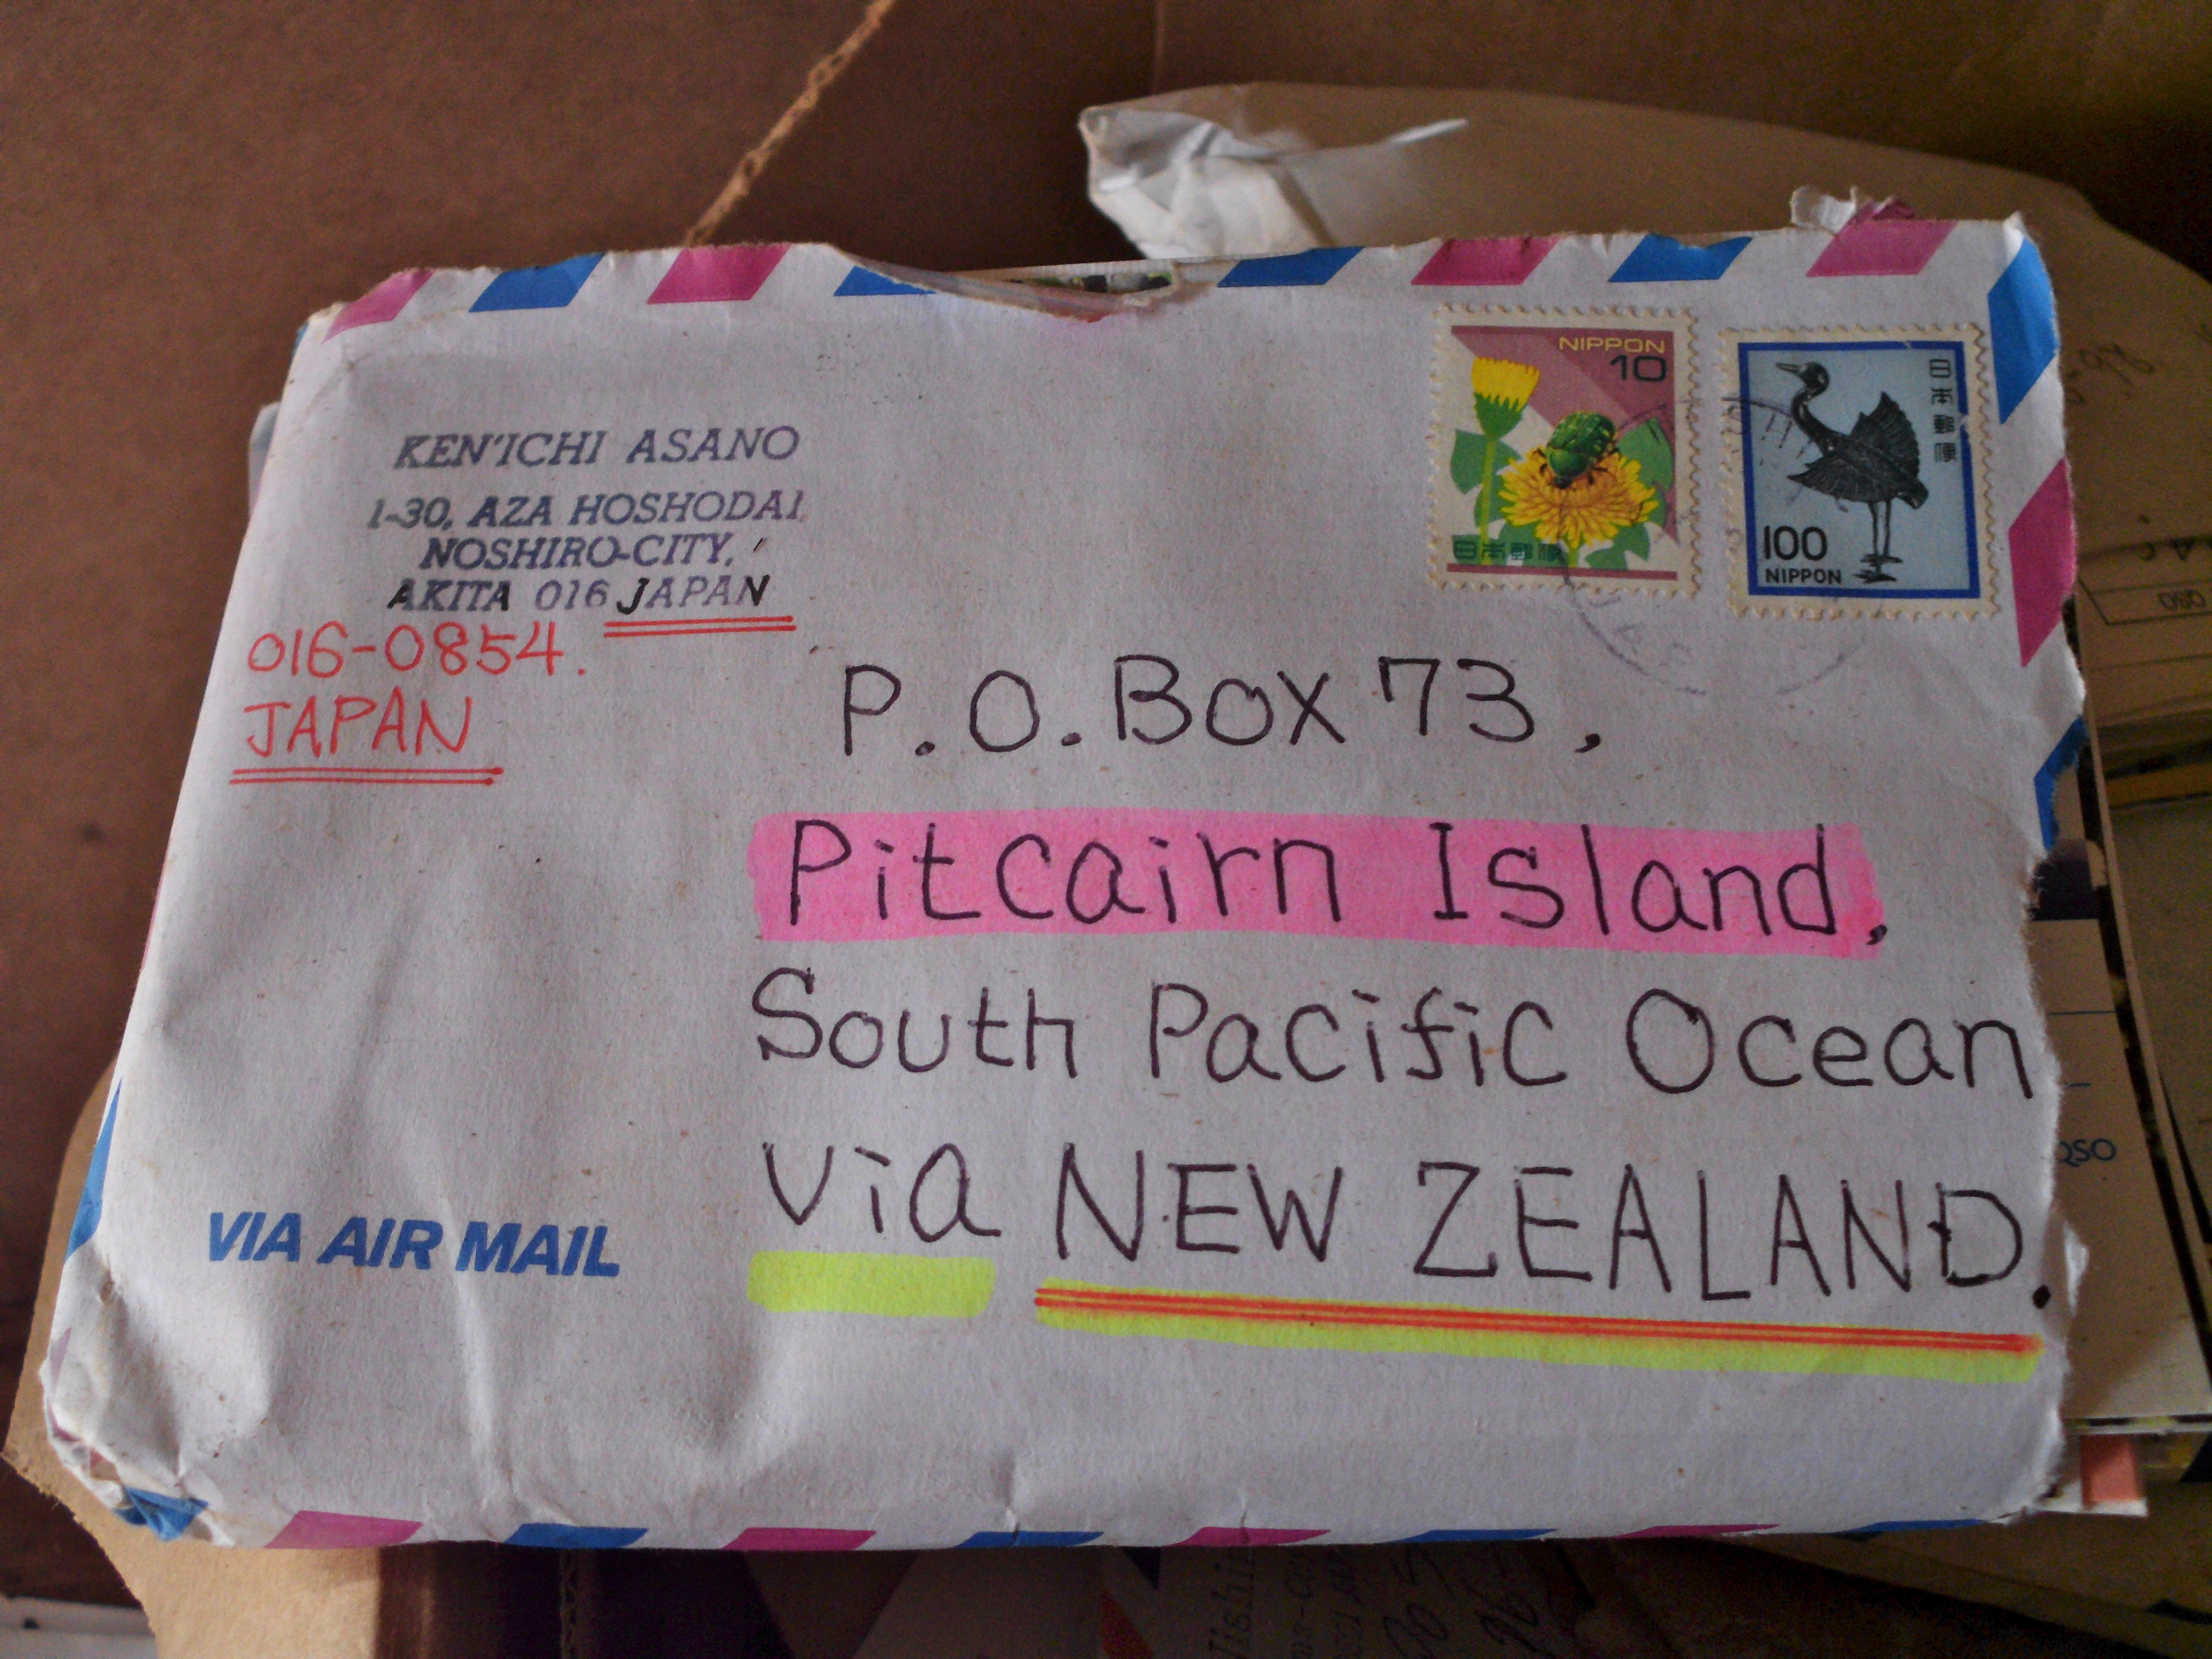 How to Get to Pitcairn Island